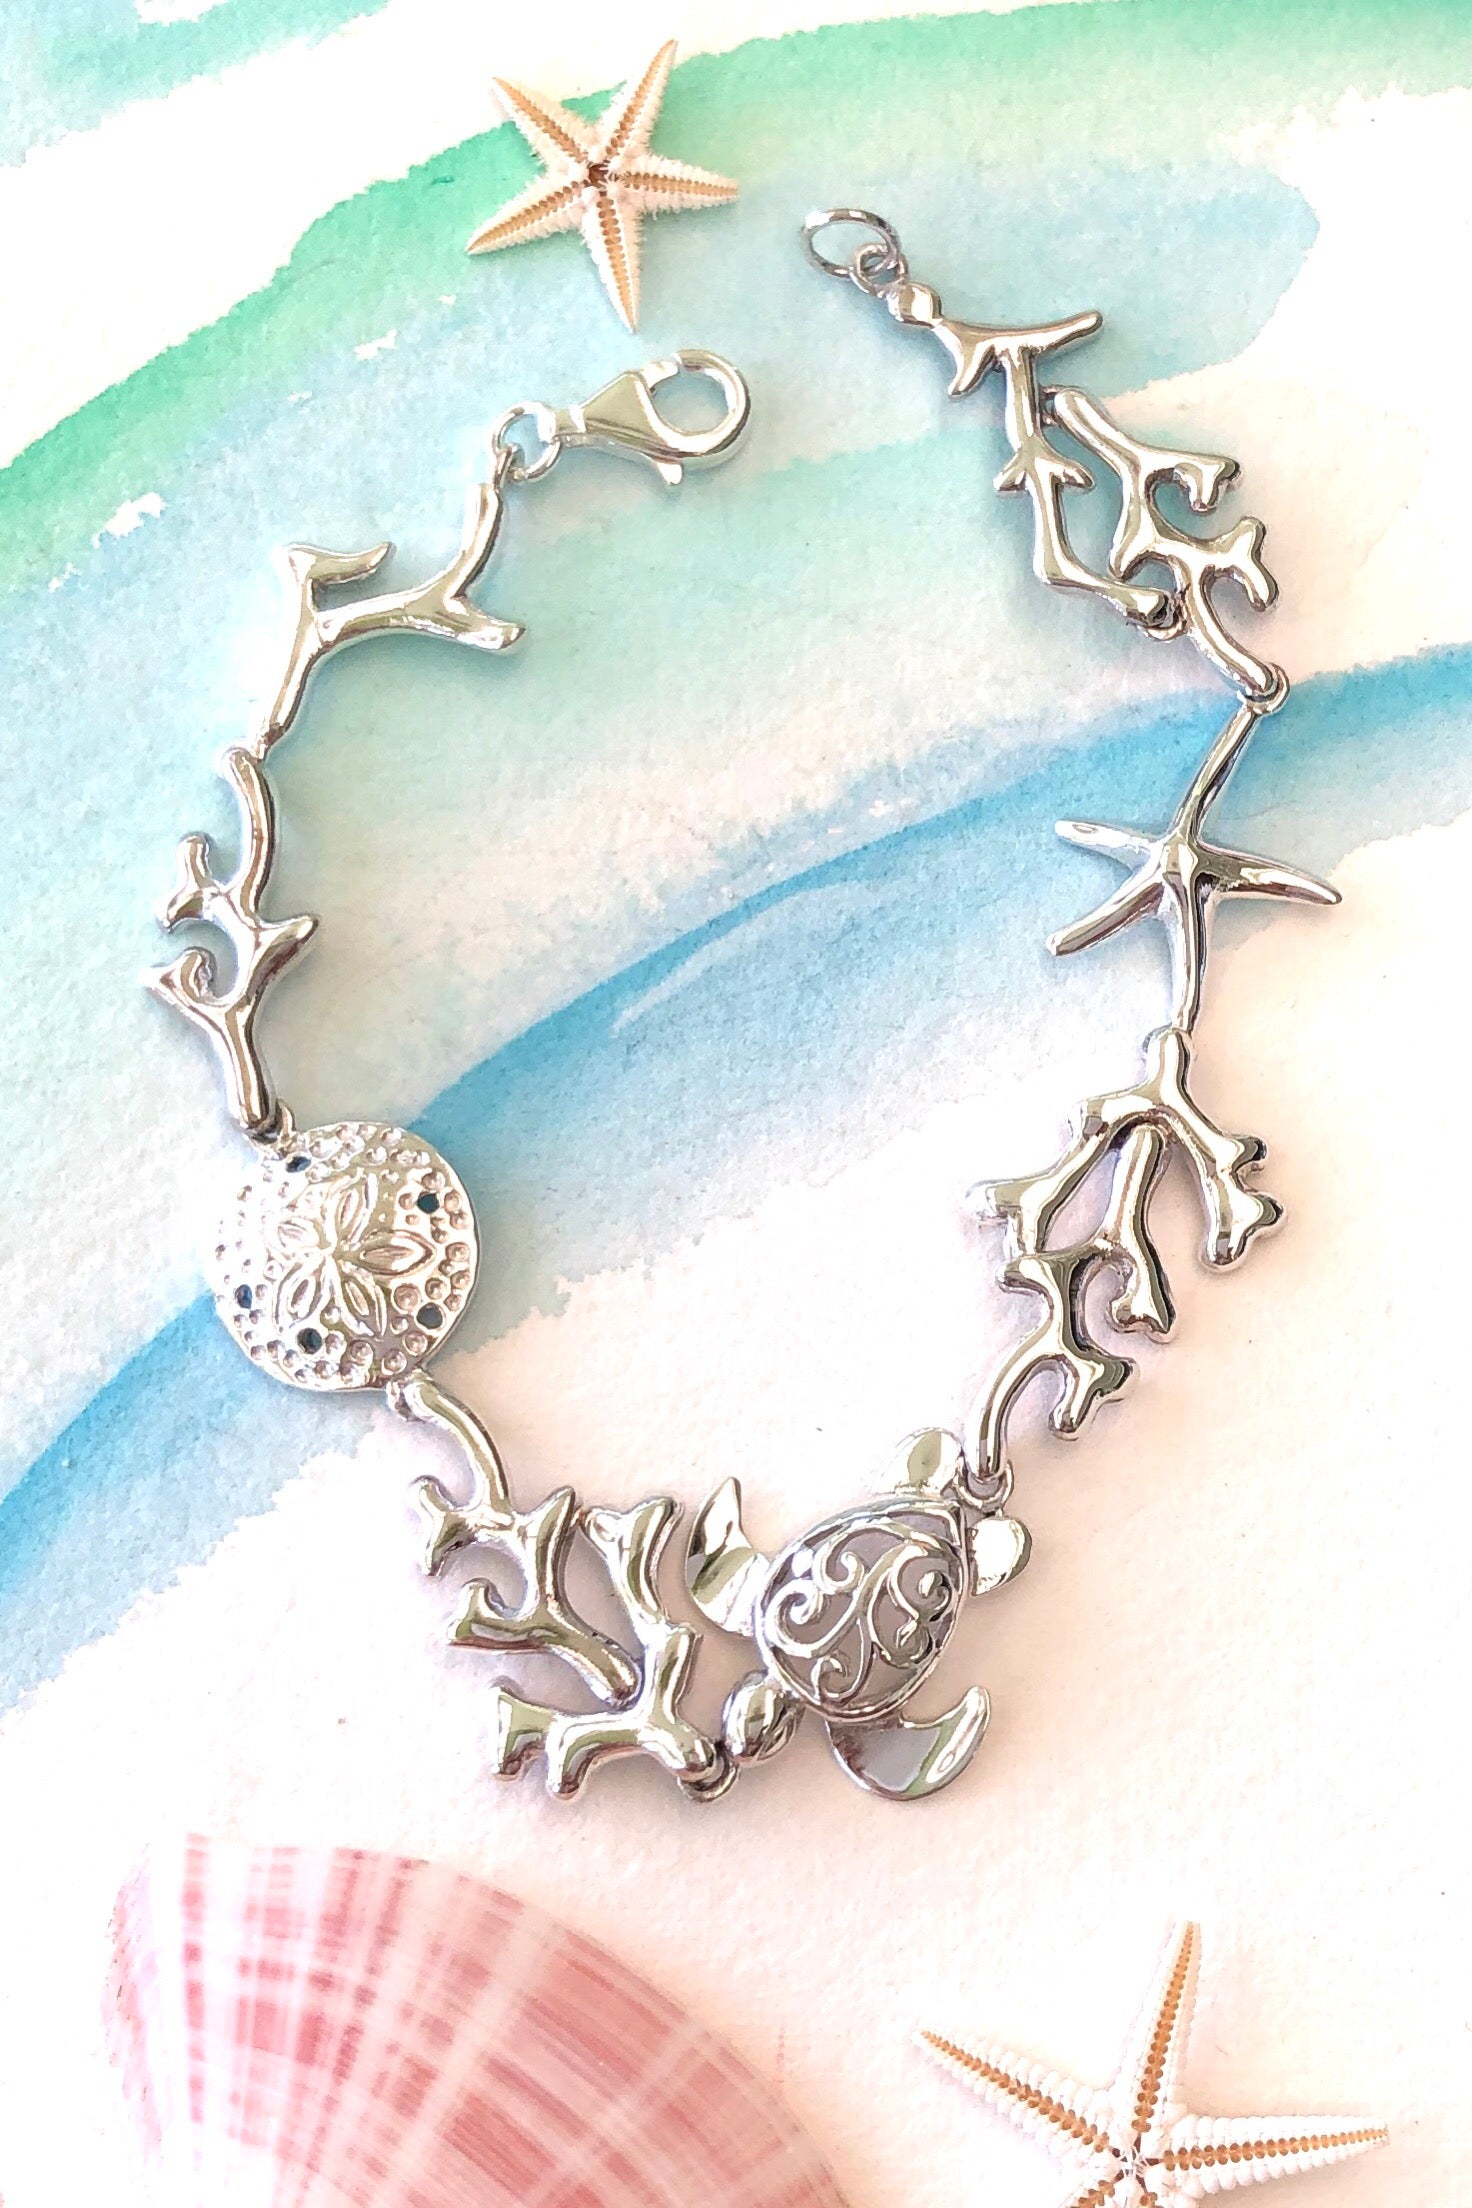 925 solid silver symbols of the sea all connected around the wrist